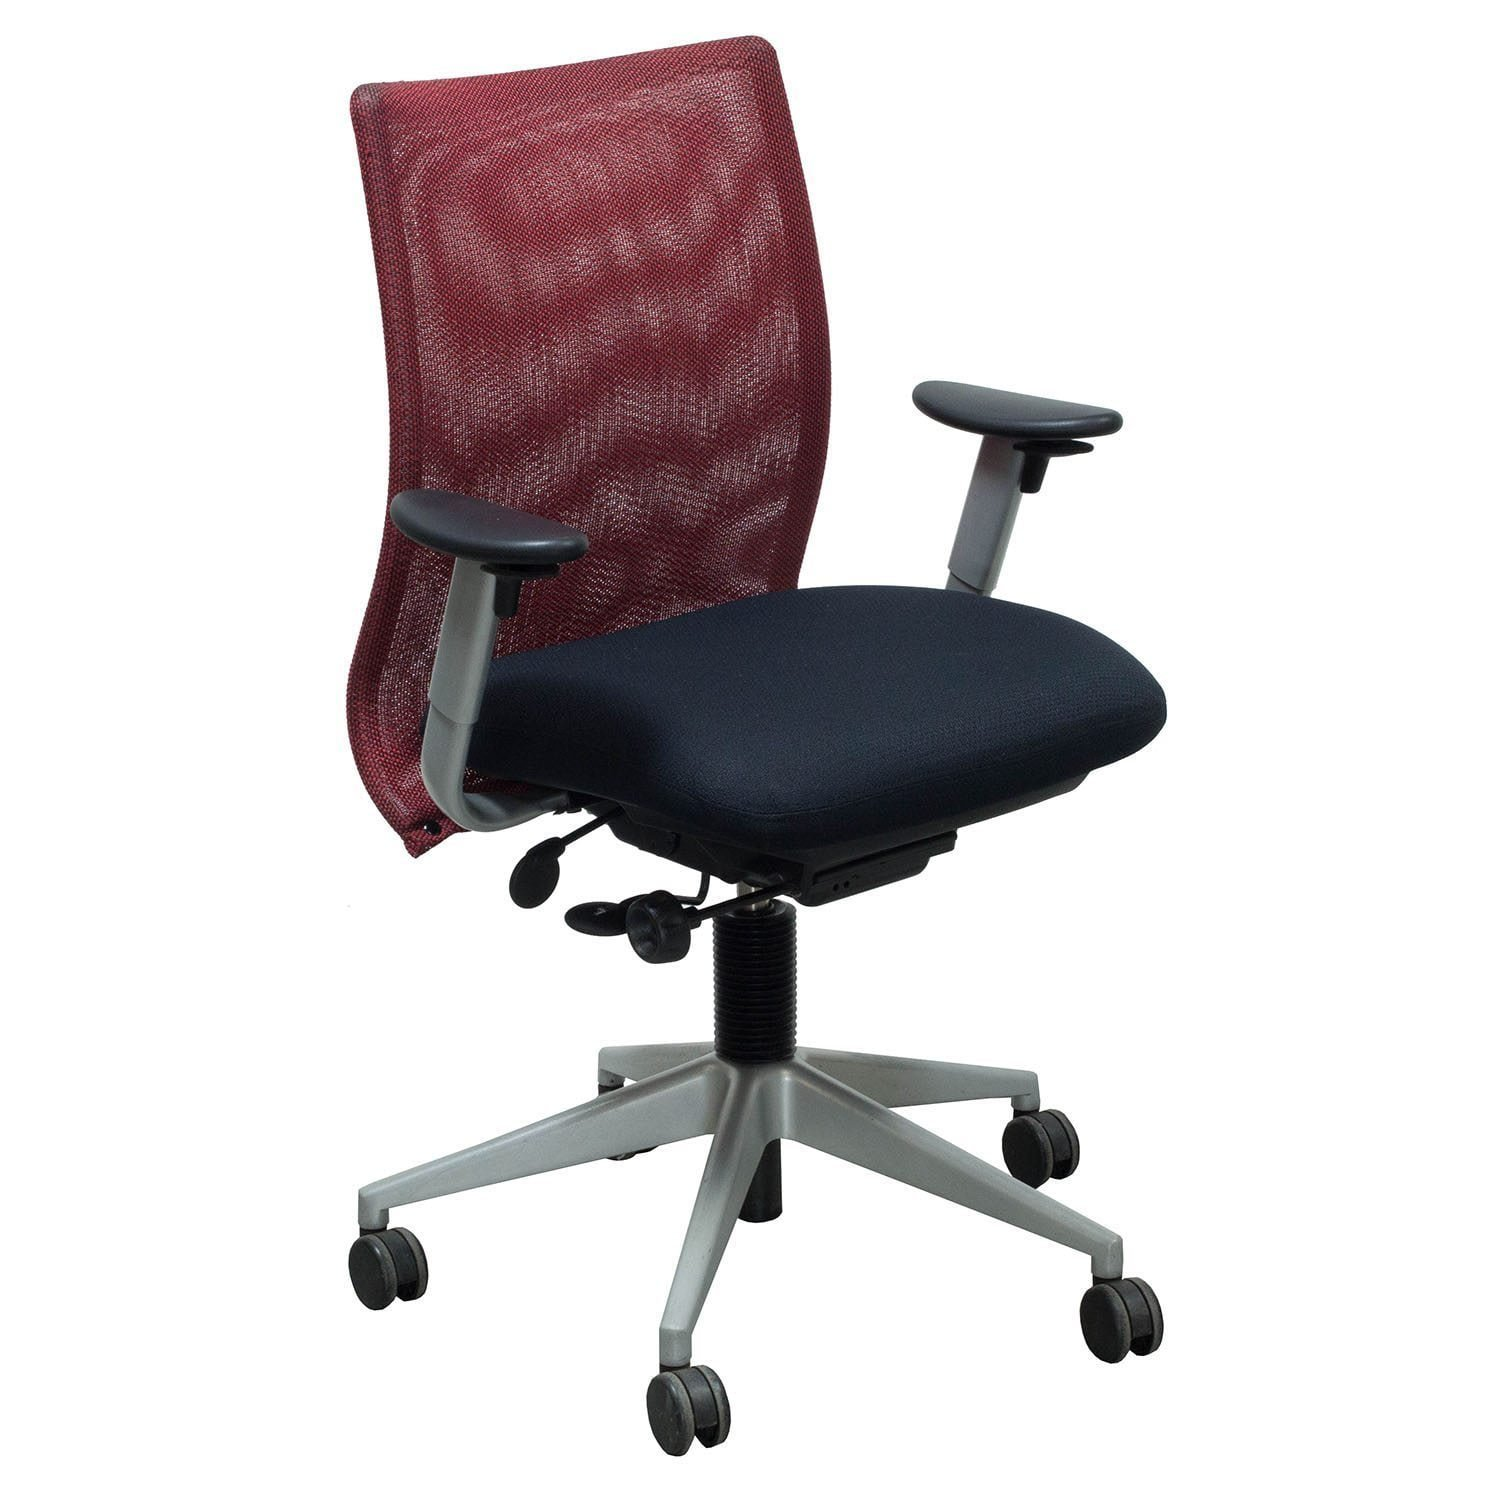 Steelcase Chairs Steelcase Jersey Used Task Chair Red And Black National